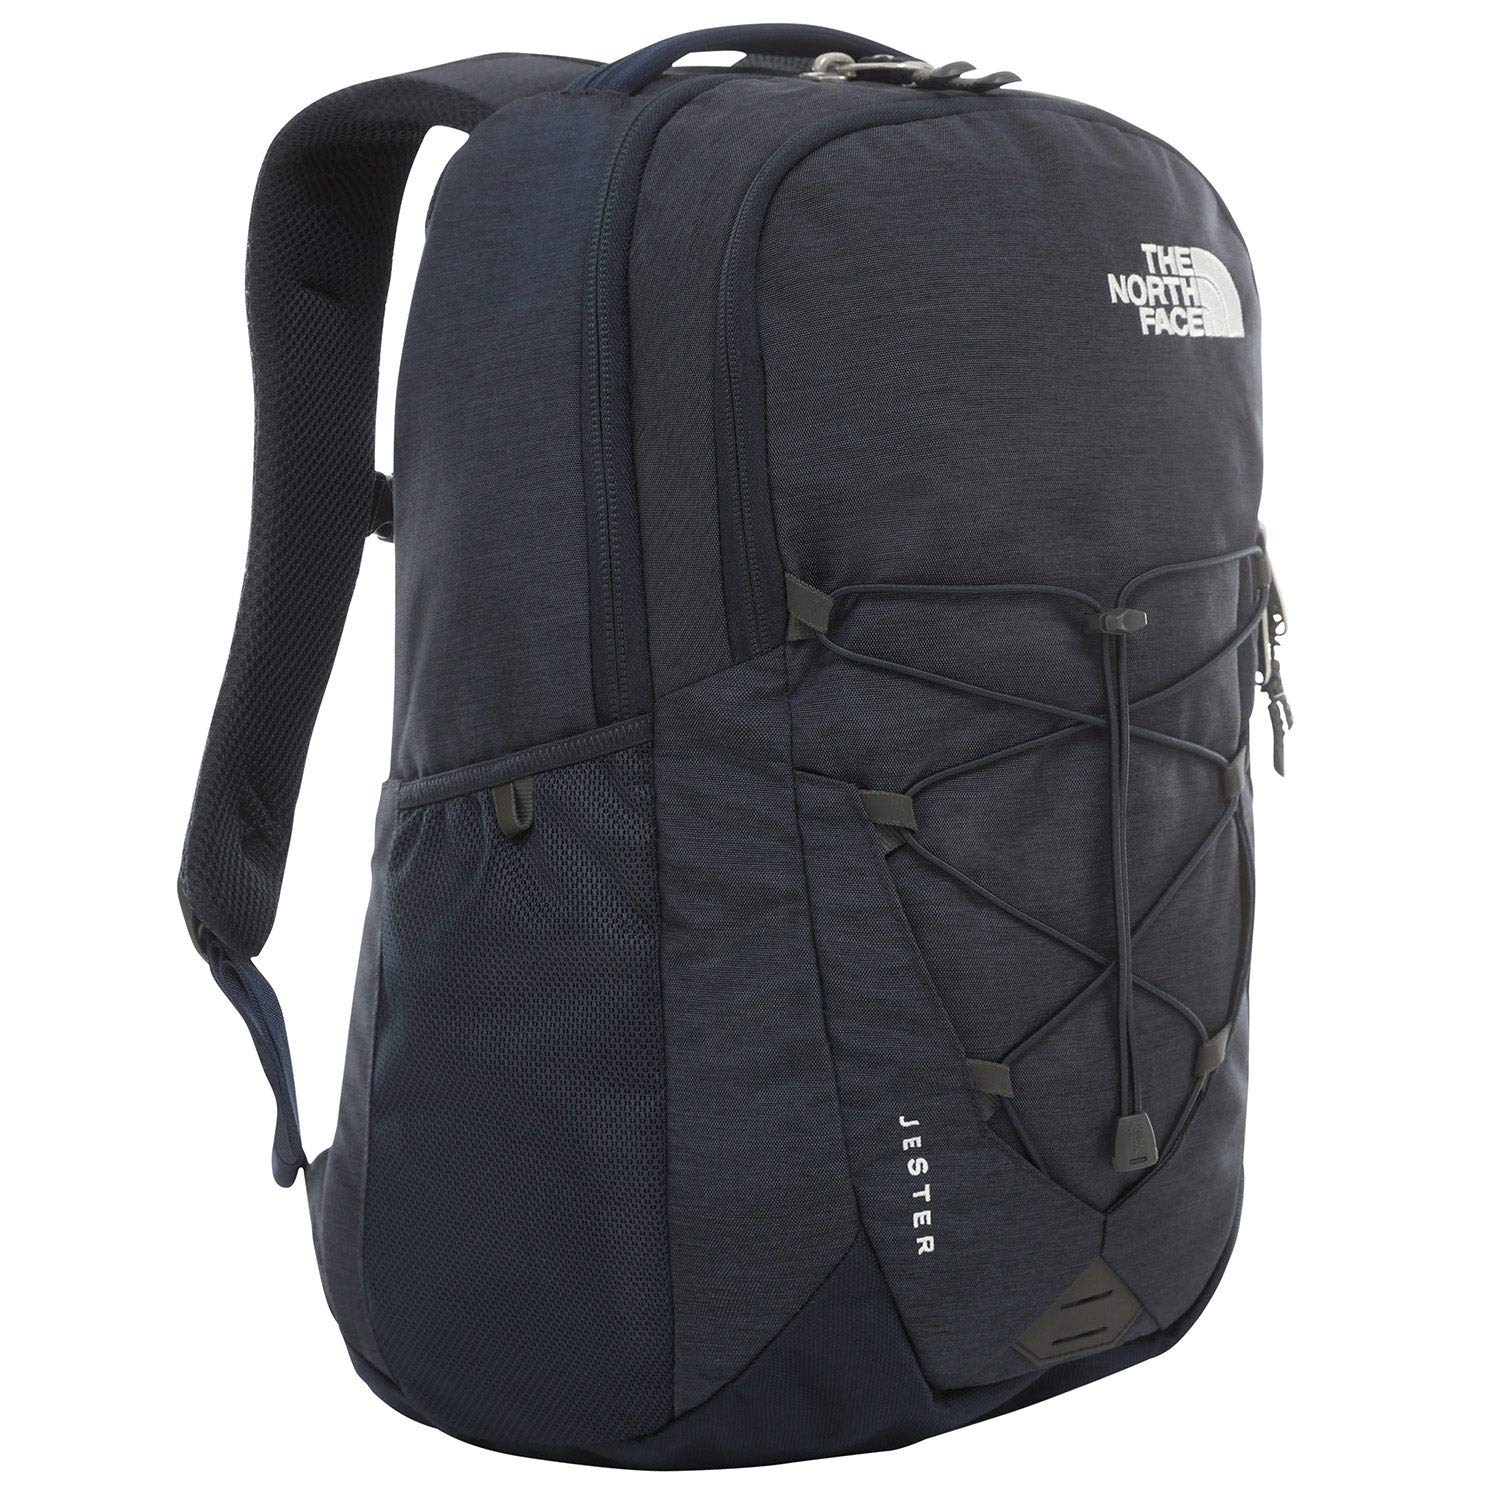 The North Face Jester Backpack, Urban Navy Light Heather/TNF White by The North Face